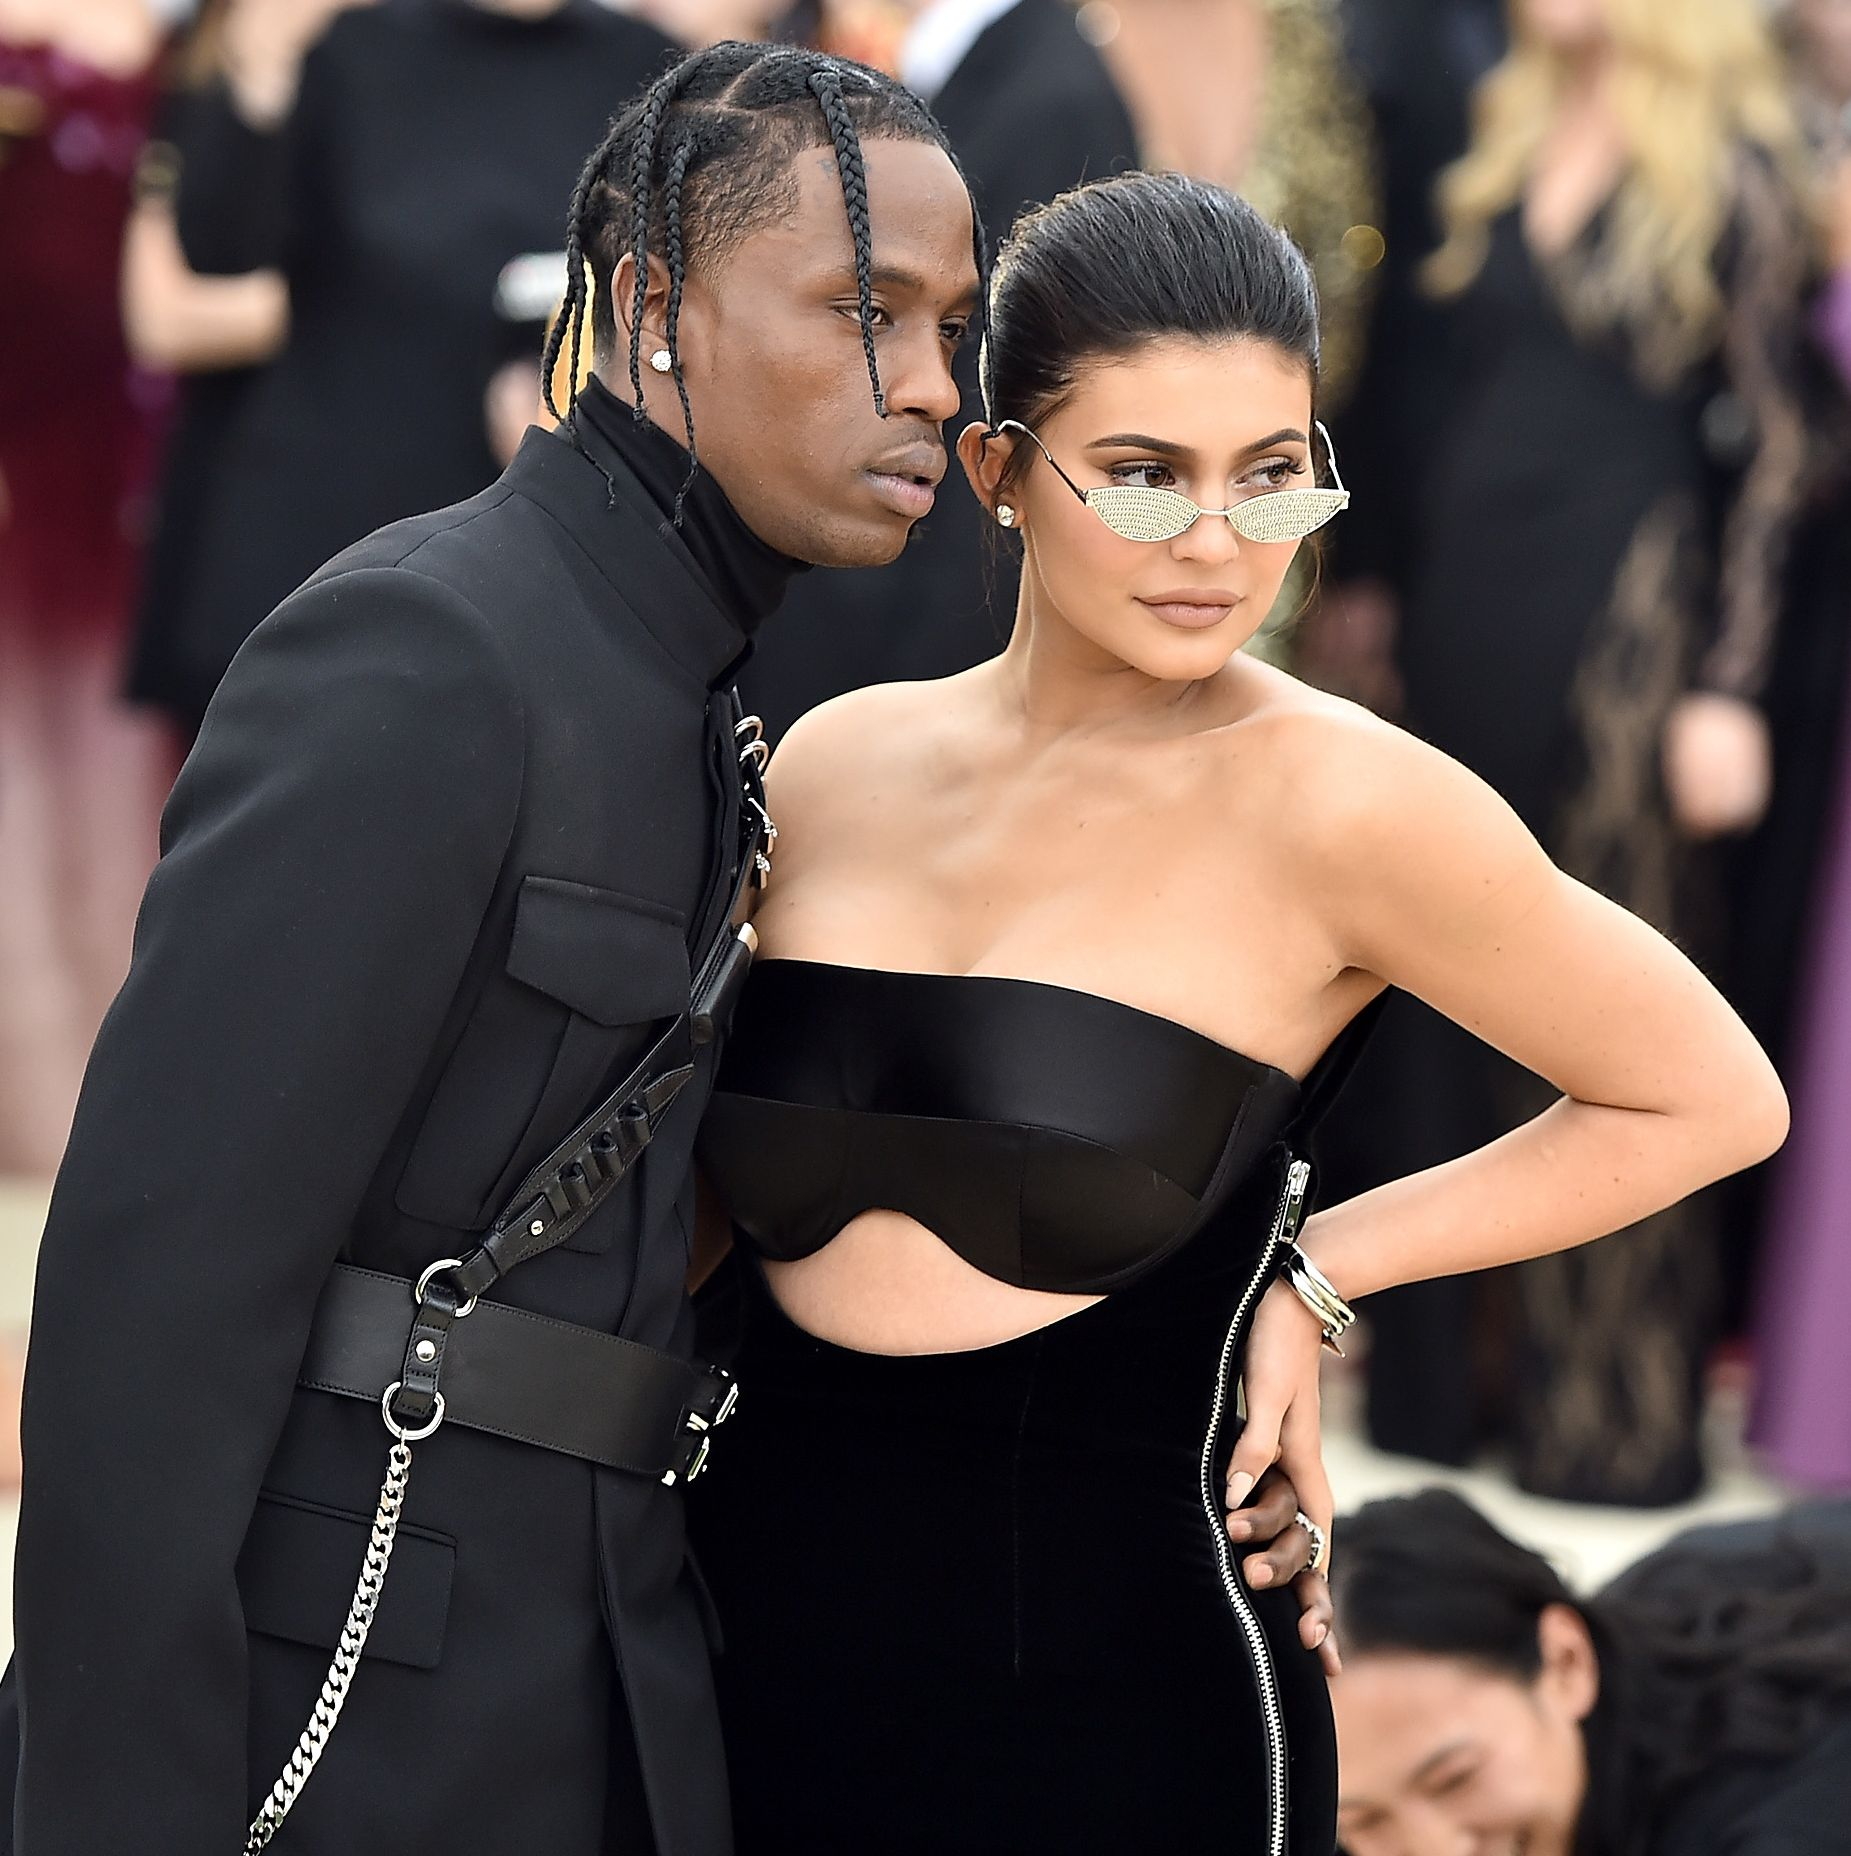 Kylie Jenner Is Reportedly 'Finding It Hard to Trust' Travis Scott While He's Away